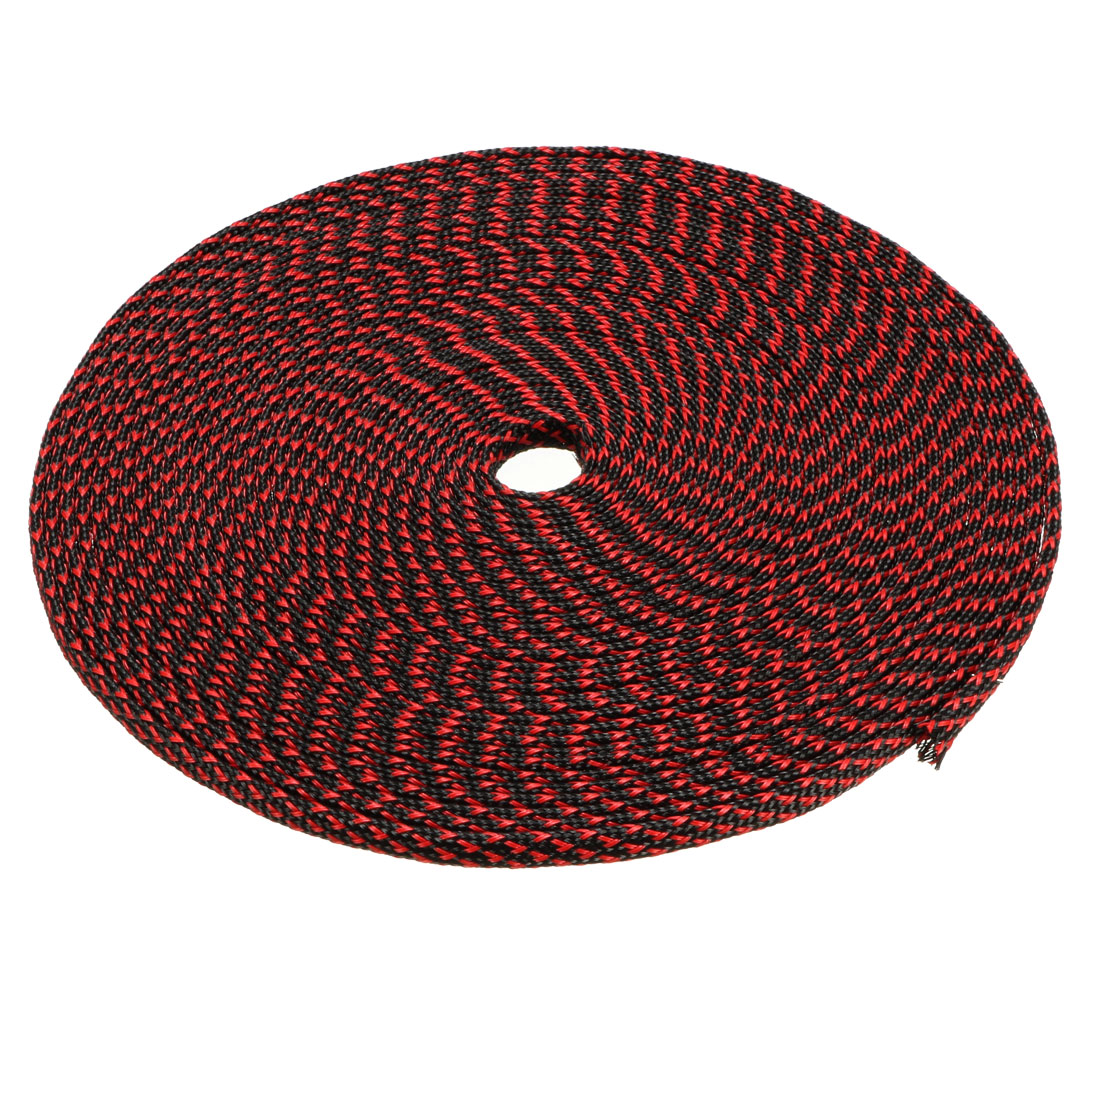 3mm Dia Tight Braided PET Expandable Sleeving Cable Wrap Sheath Black Red 32Ft